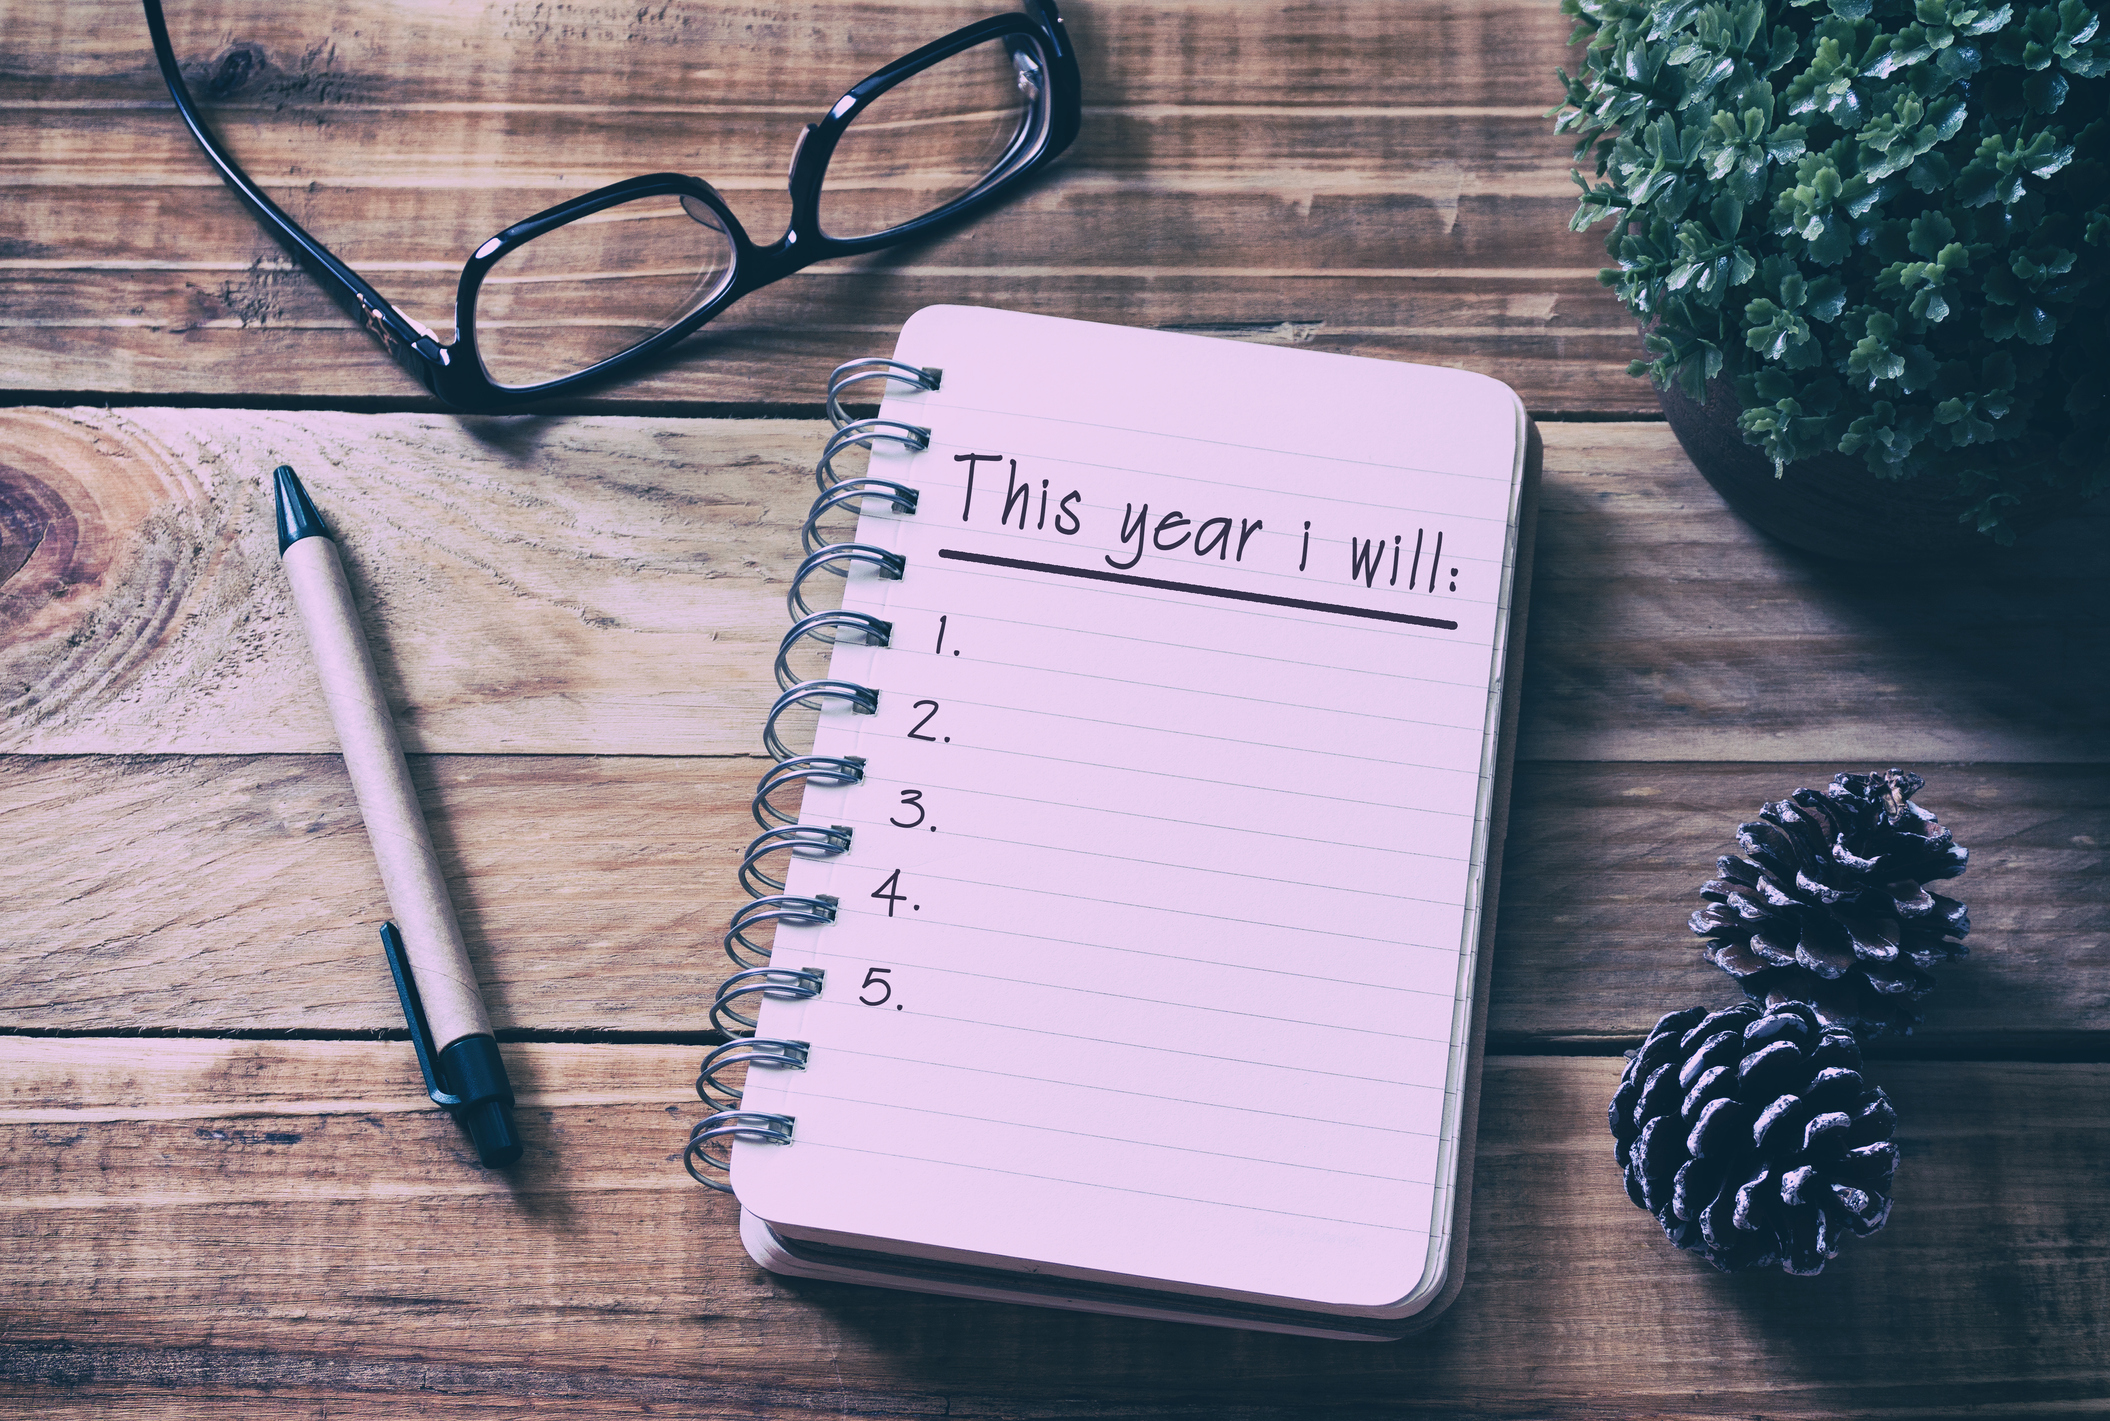 """Notebook with """"This year I will:"""" written on it followed by the numbers one through five."""